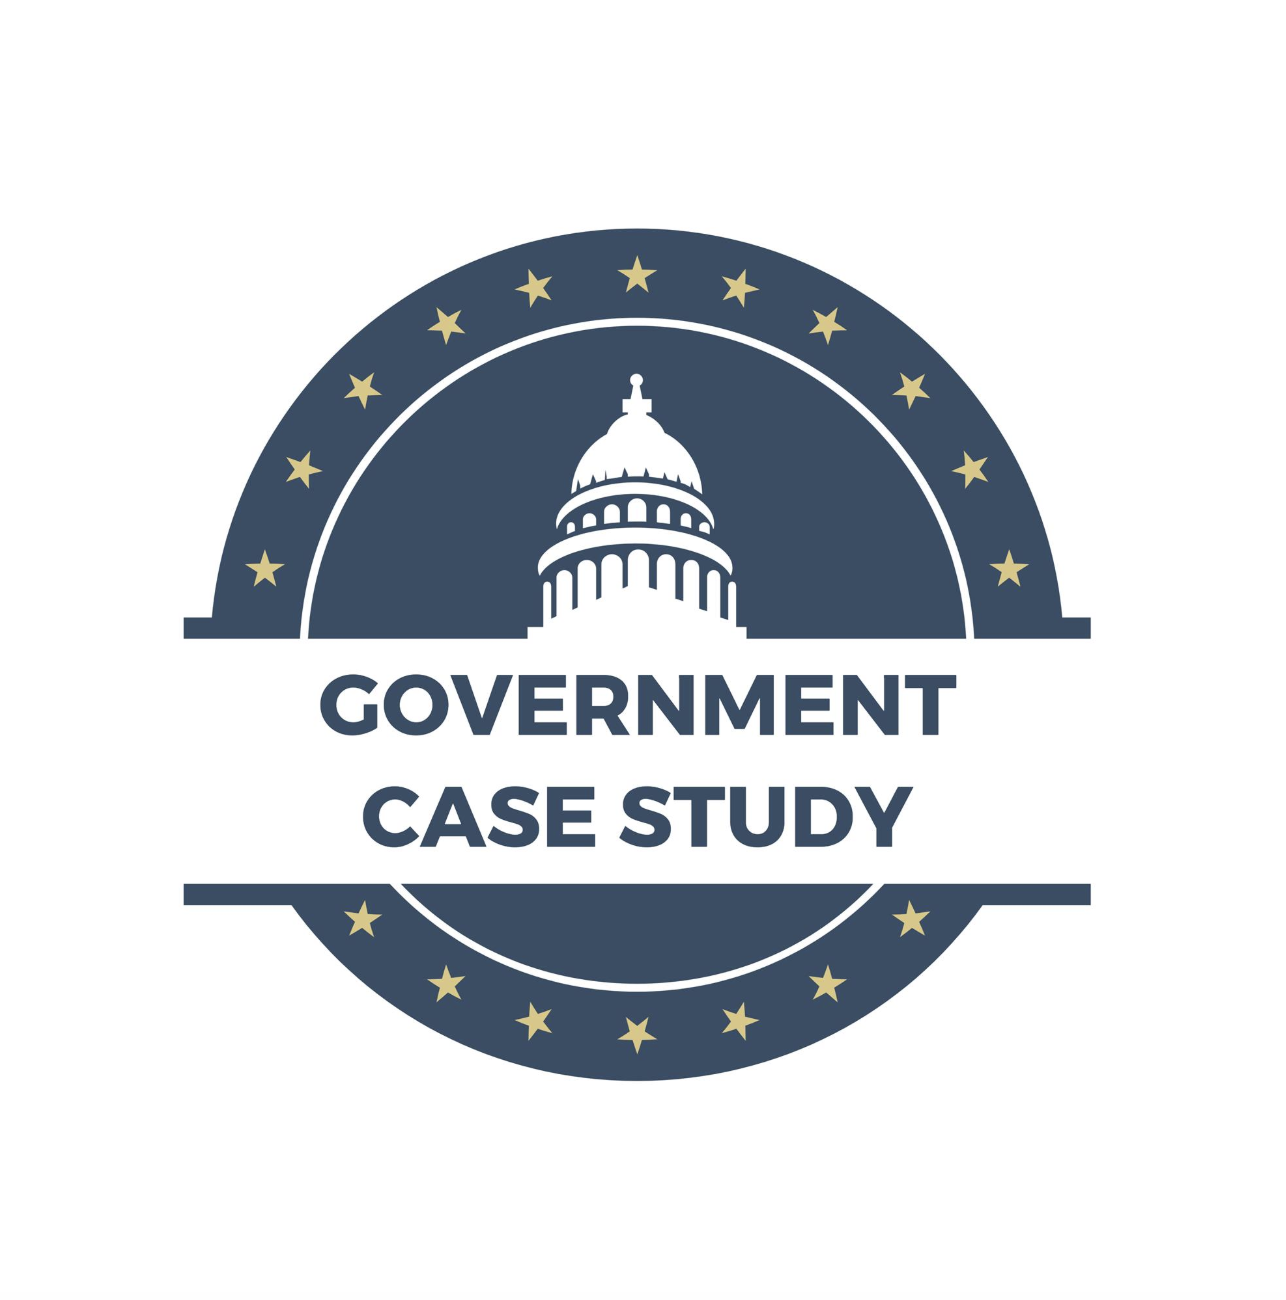 Government Case Study